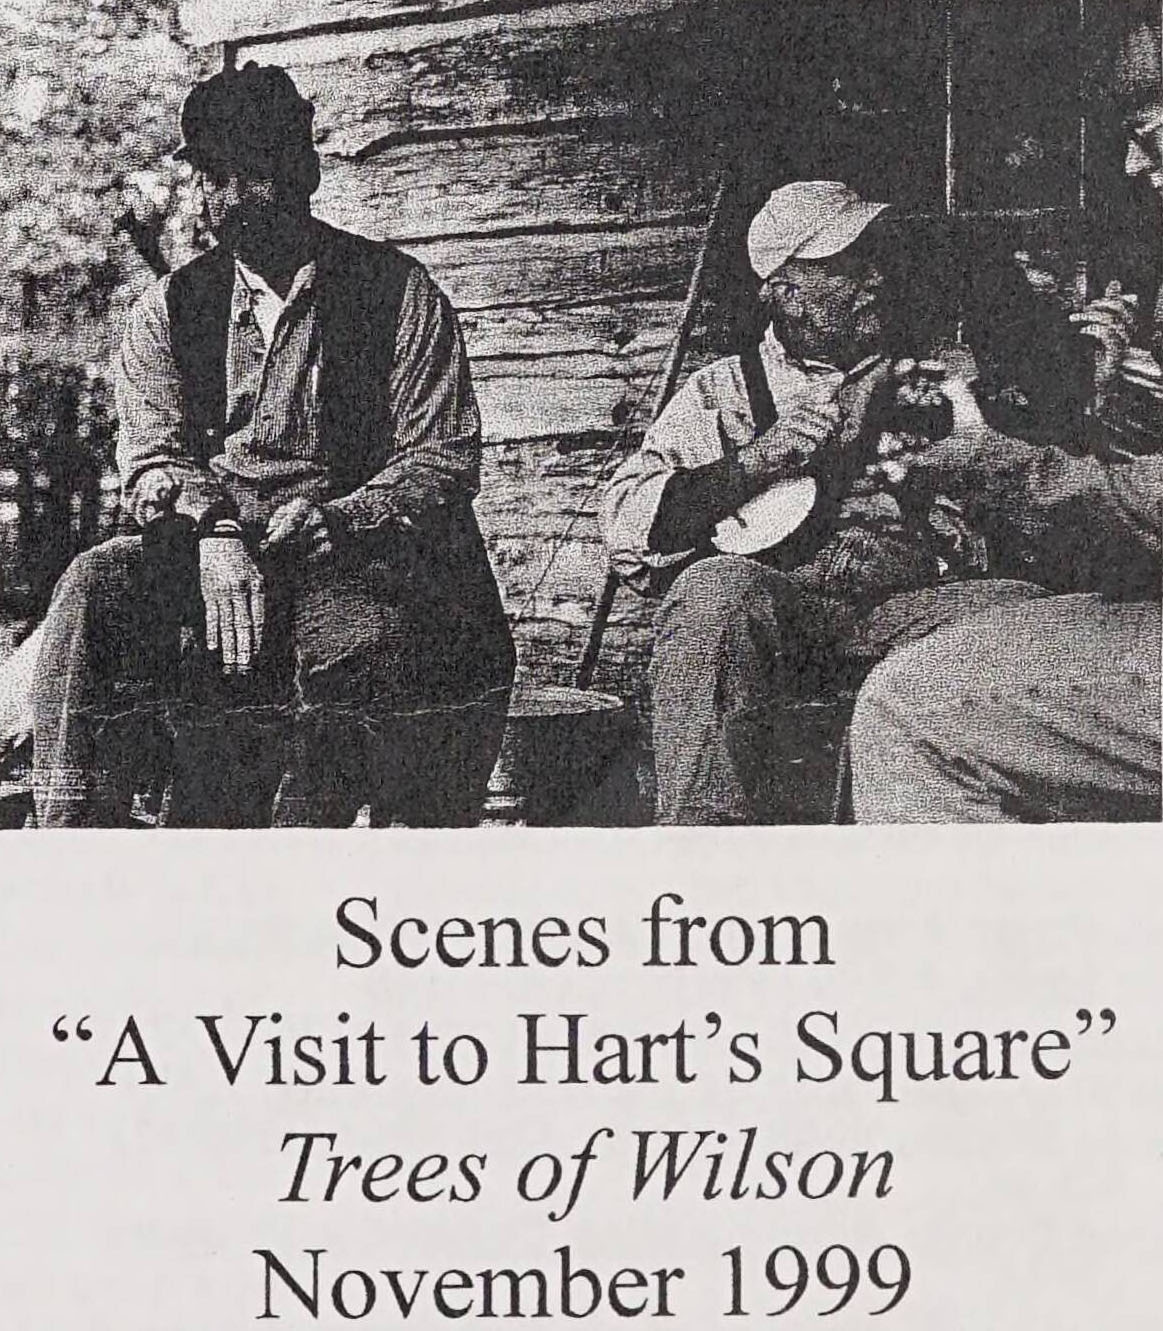 """Scenes from """"A Visit to Hart's Square"""" Trees of Wilson, November 1999. Above the words is a picture of three adults sitting. One is holding a banjo, a second a guitar. The third has no instrument."""